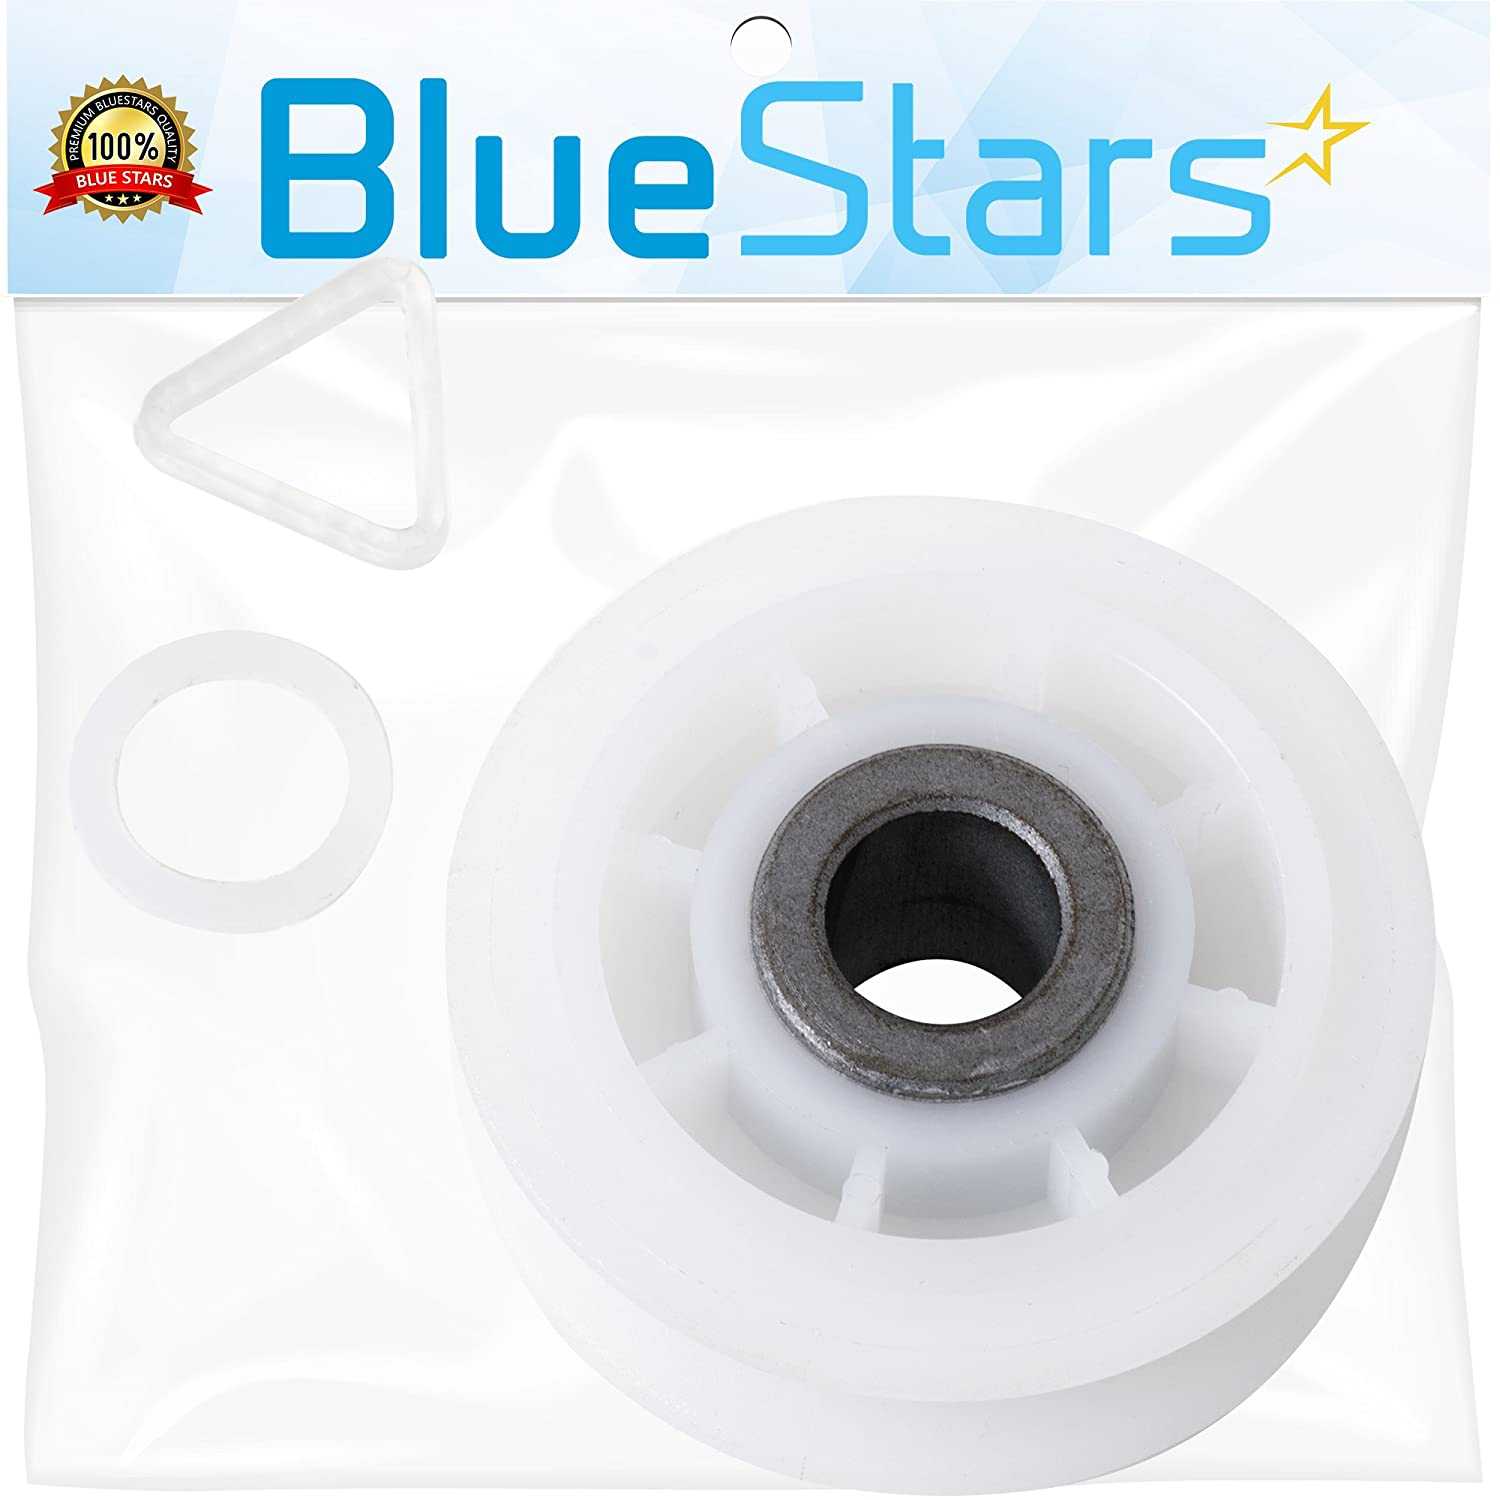 Ultra Durable 279640 Dryer Idler Pulley Replacement part by Blue Stars - Exact Fit for Whirlpool & Kenmore dryer - Replaces 3388672, 697692, AP3094197, W10468057